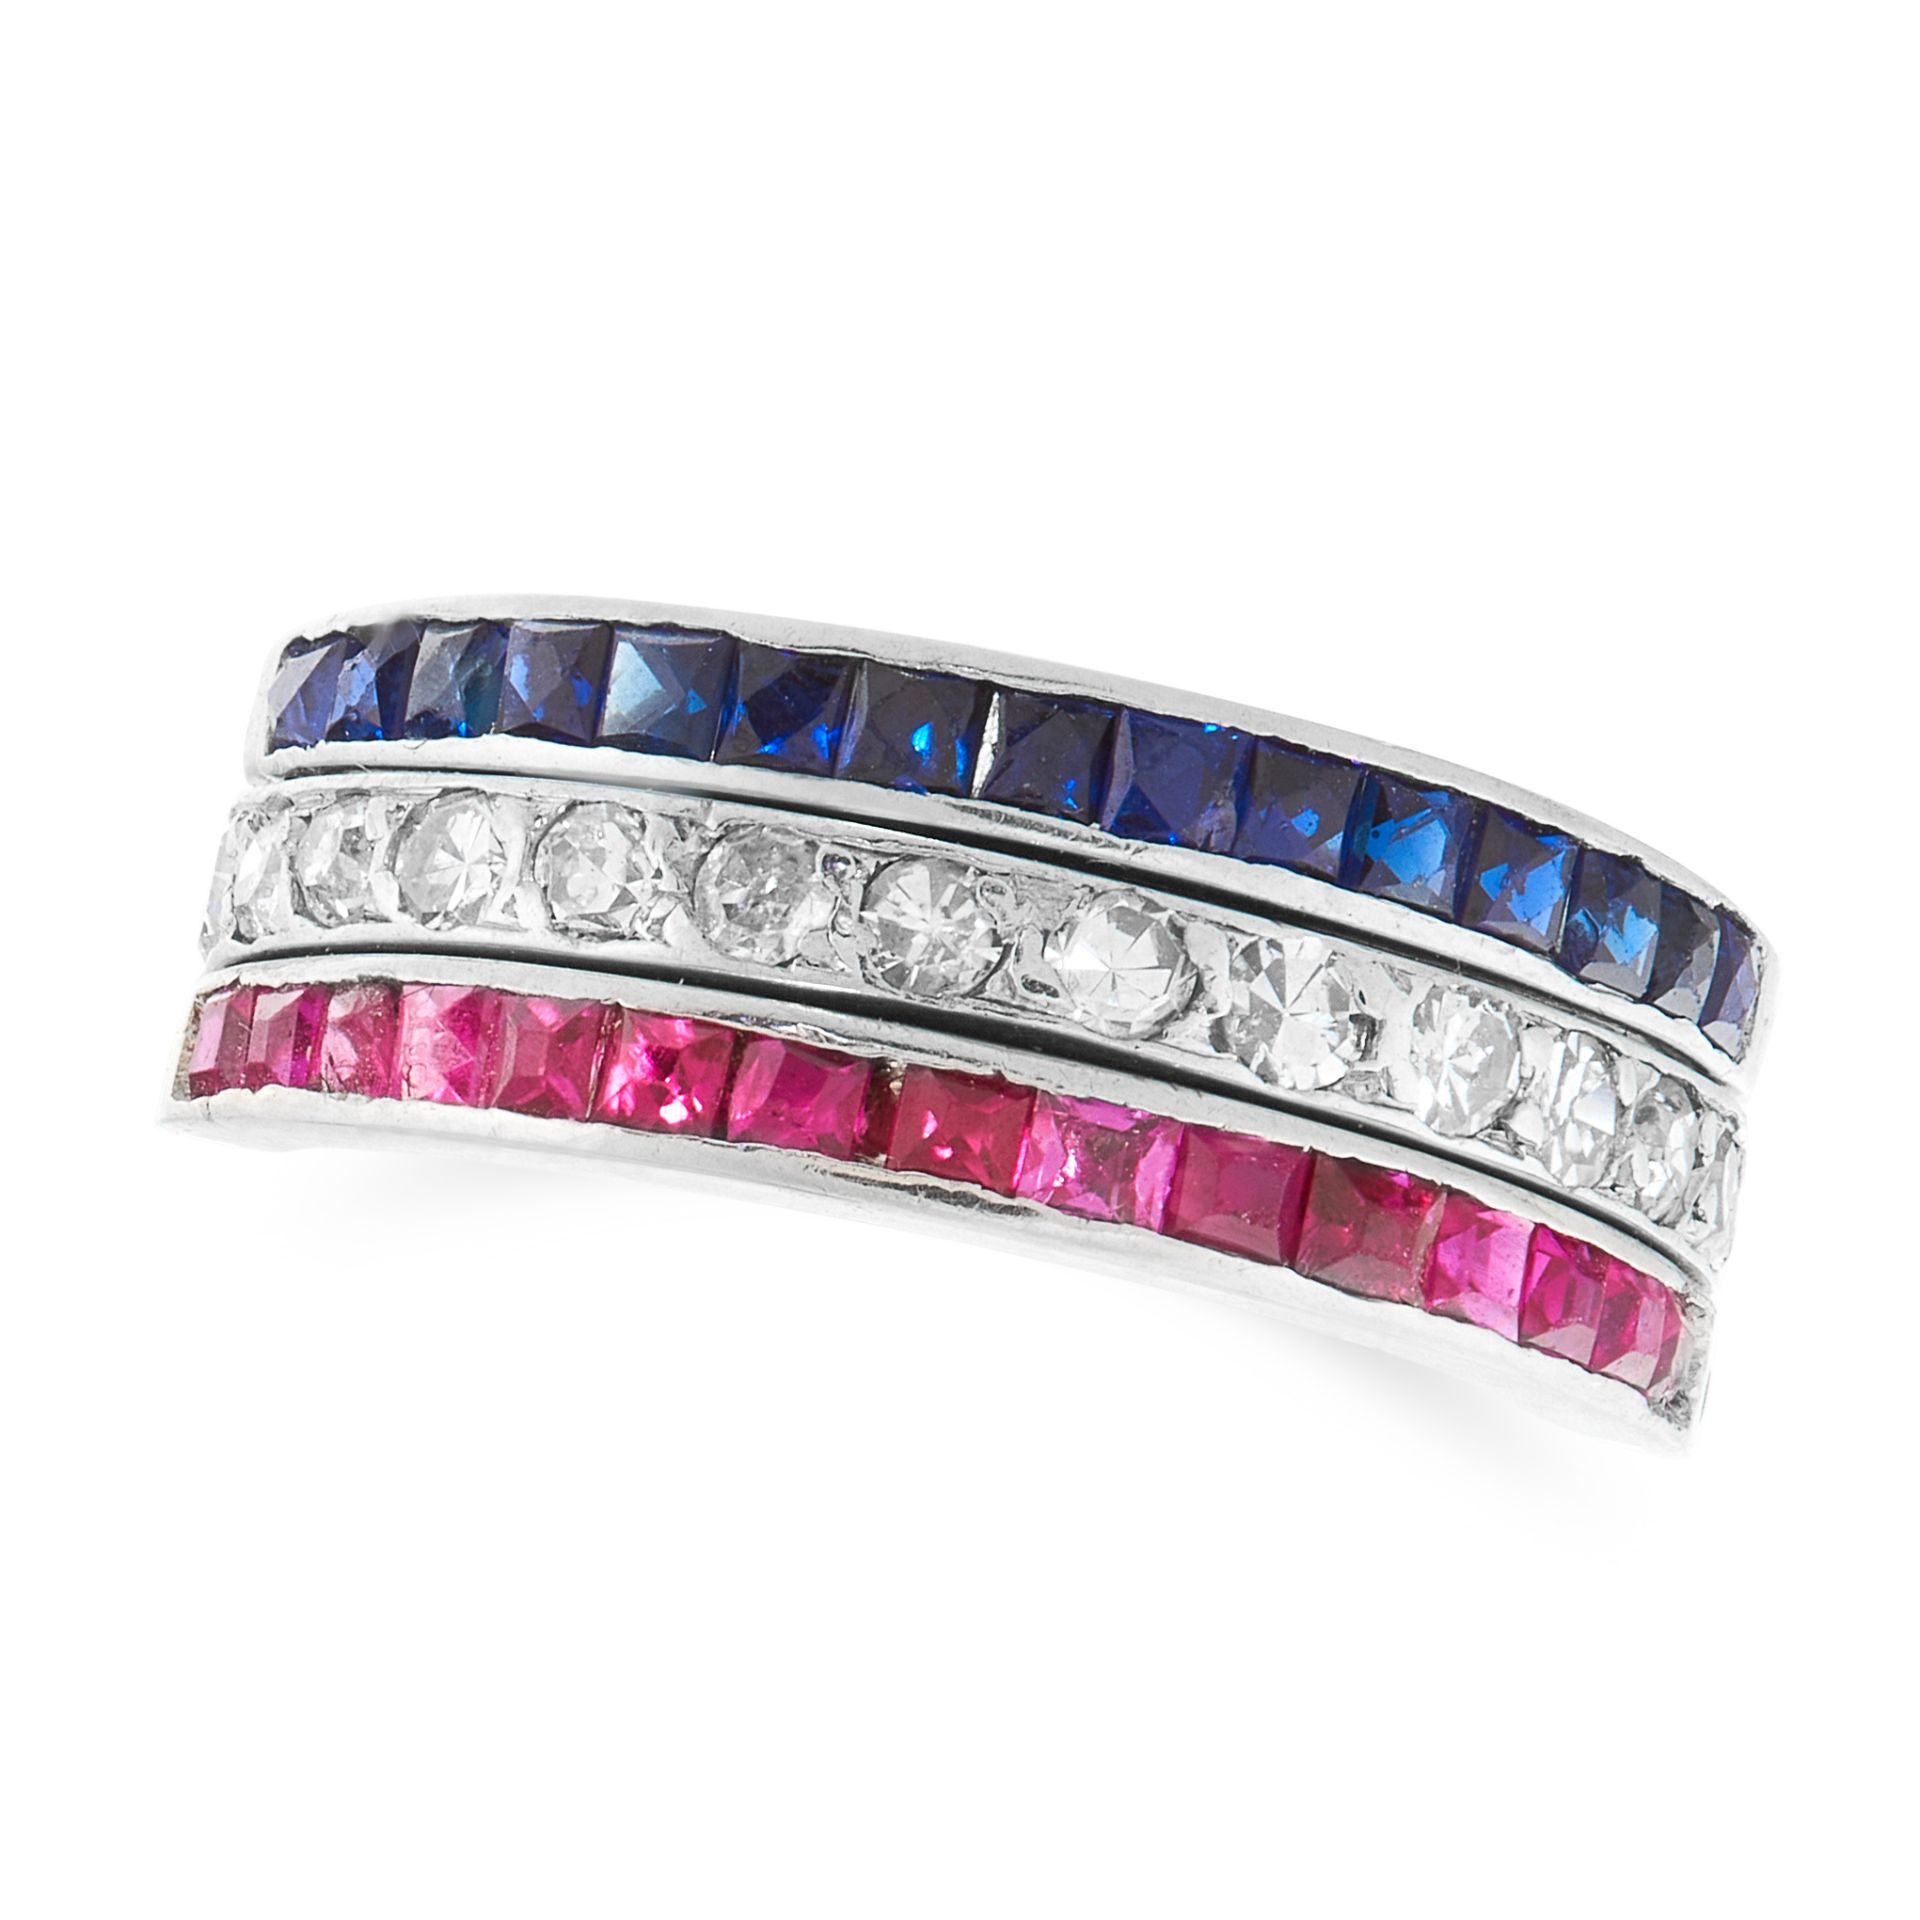 A SAPPHIRE, RUBY AND DIAMOND REVERSIBLE RING the central band set with single cut diamonds flanked